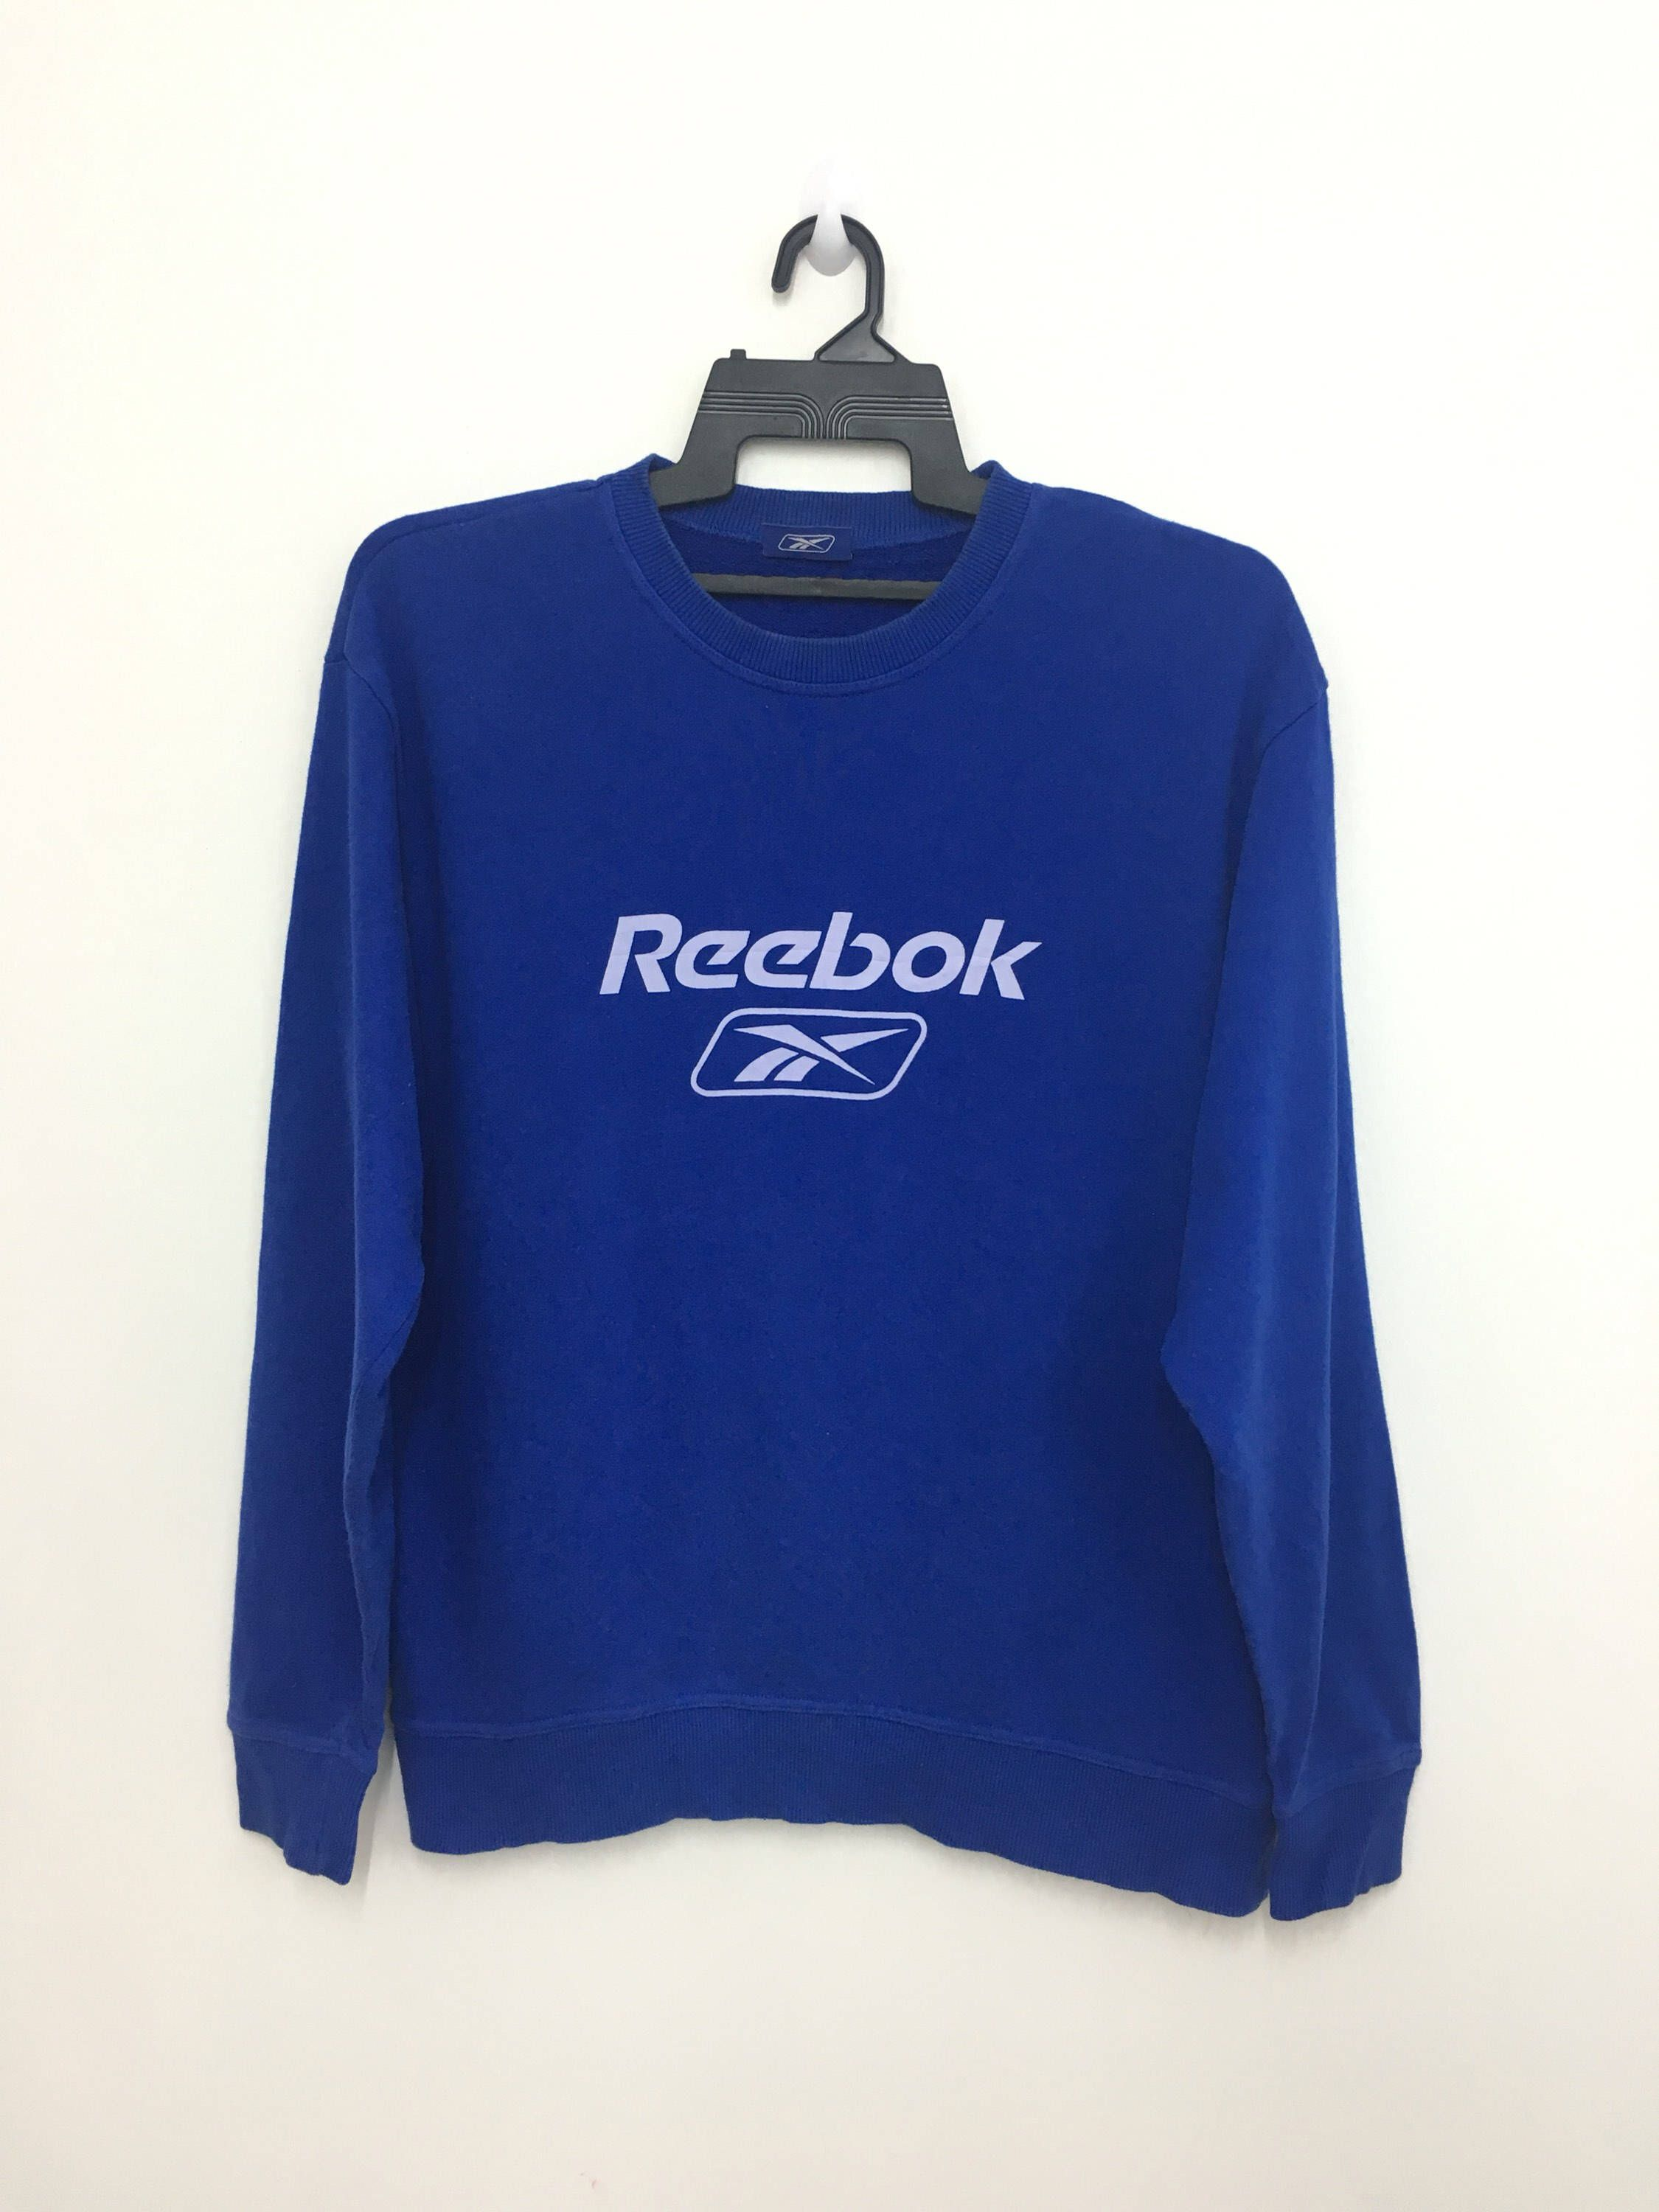 e09f832ab45 Excited to share this item from my #etsy shop: Sale!! Vintage REEBOK  Sweatshirt Big Logo Spellout Jumper Good Condition